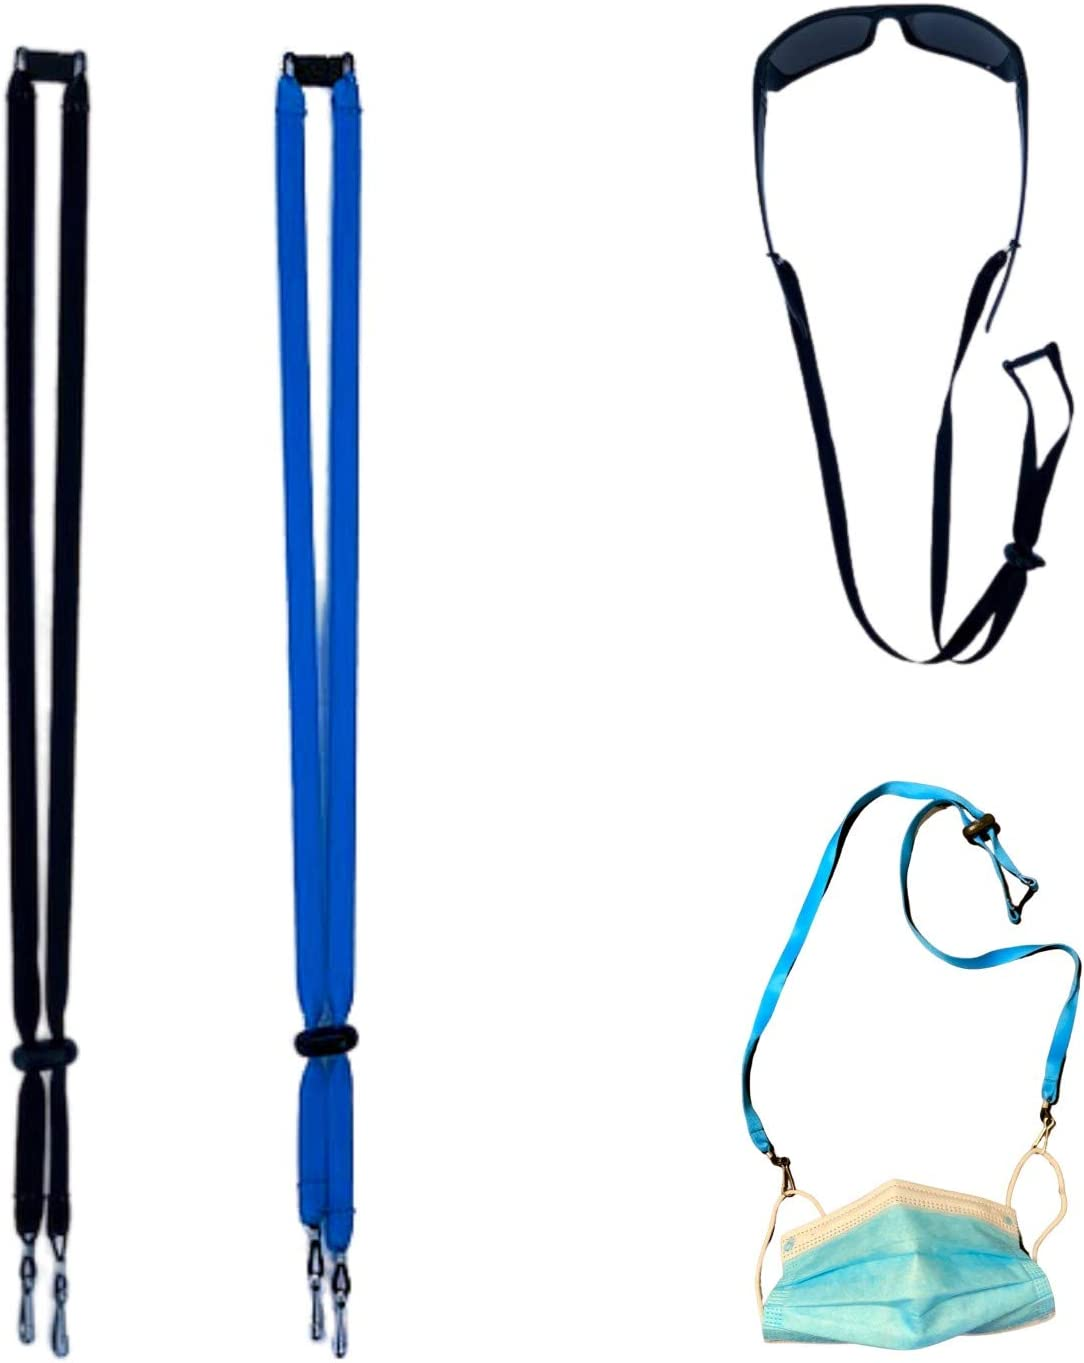 DIAMOND HAWK Face Mask Lanyard with Clips – Lanyard for Mask for Kids – Adjustable Length Multi-functional – Ideal for Mask Chains and Cords for Women - or Face Mask Holder for Any Age